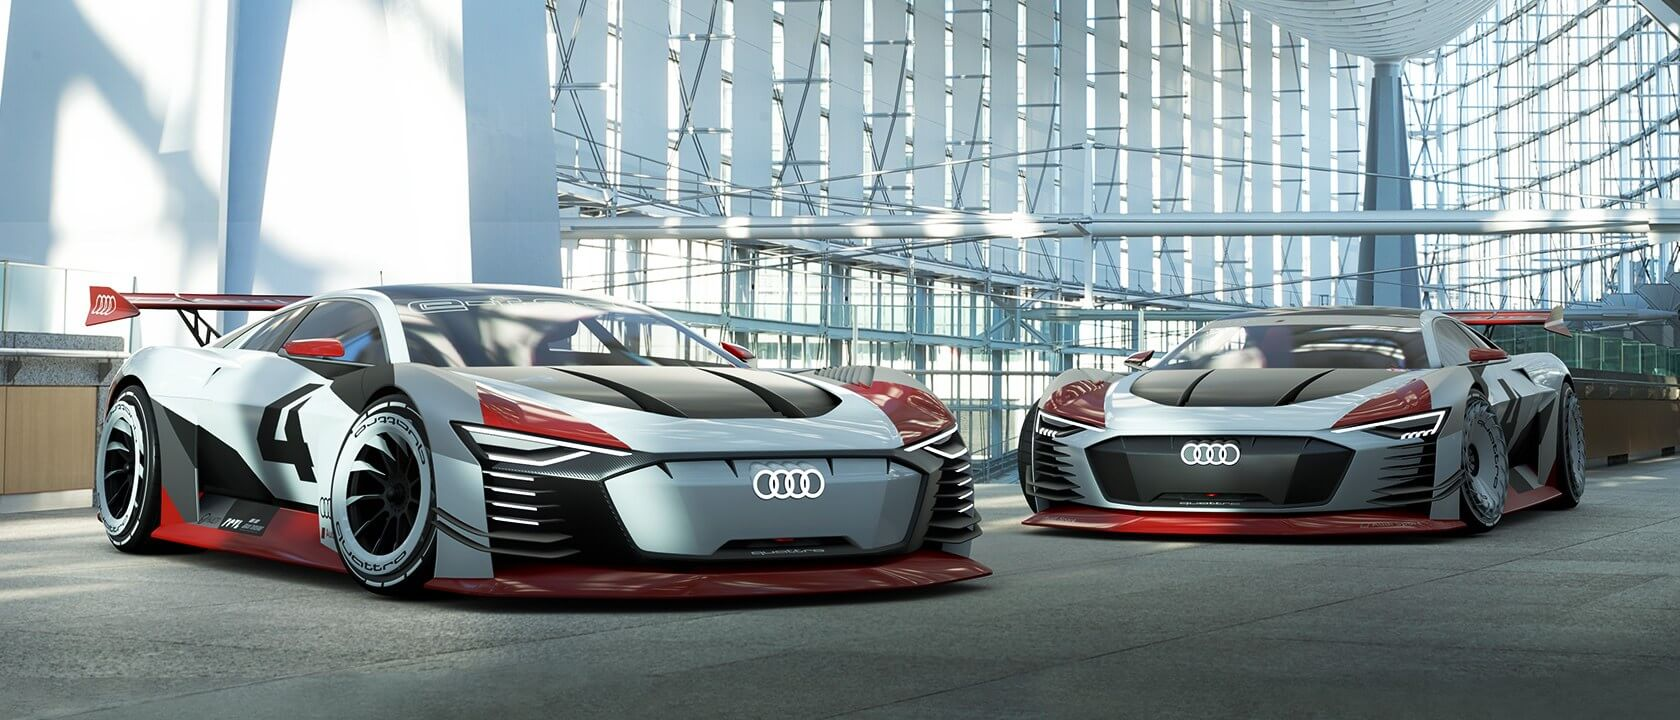 Audi S E Tron Gran Turismo Concept Car Is A Reality Techspot